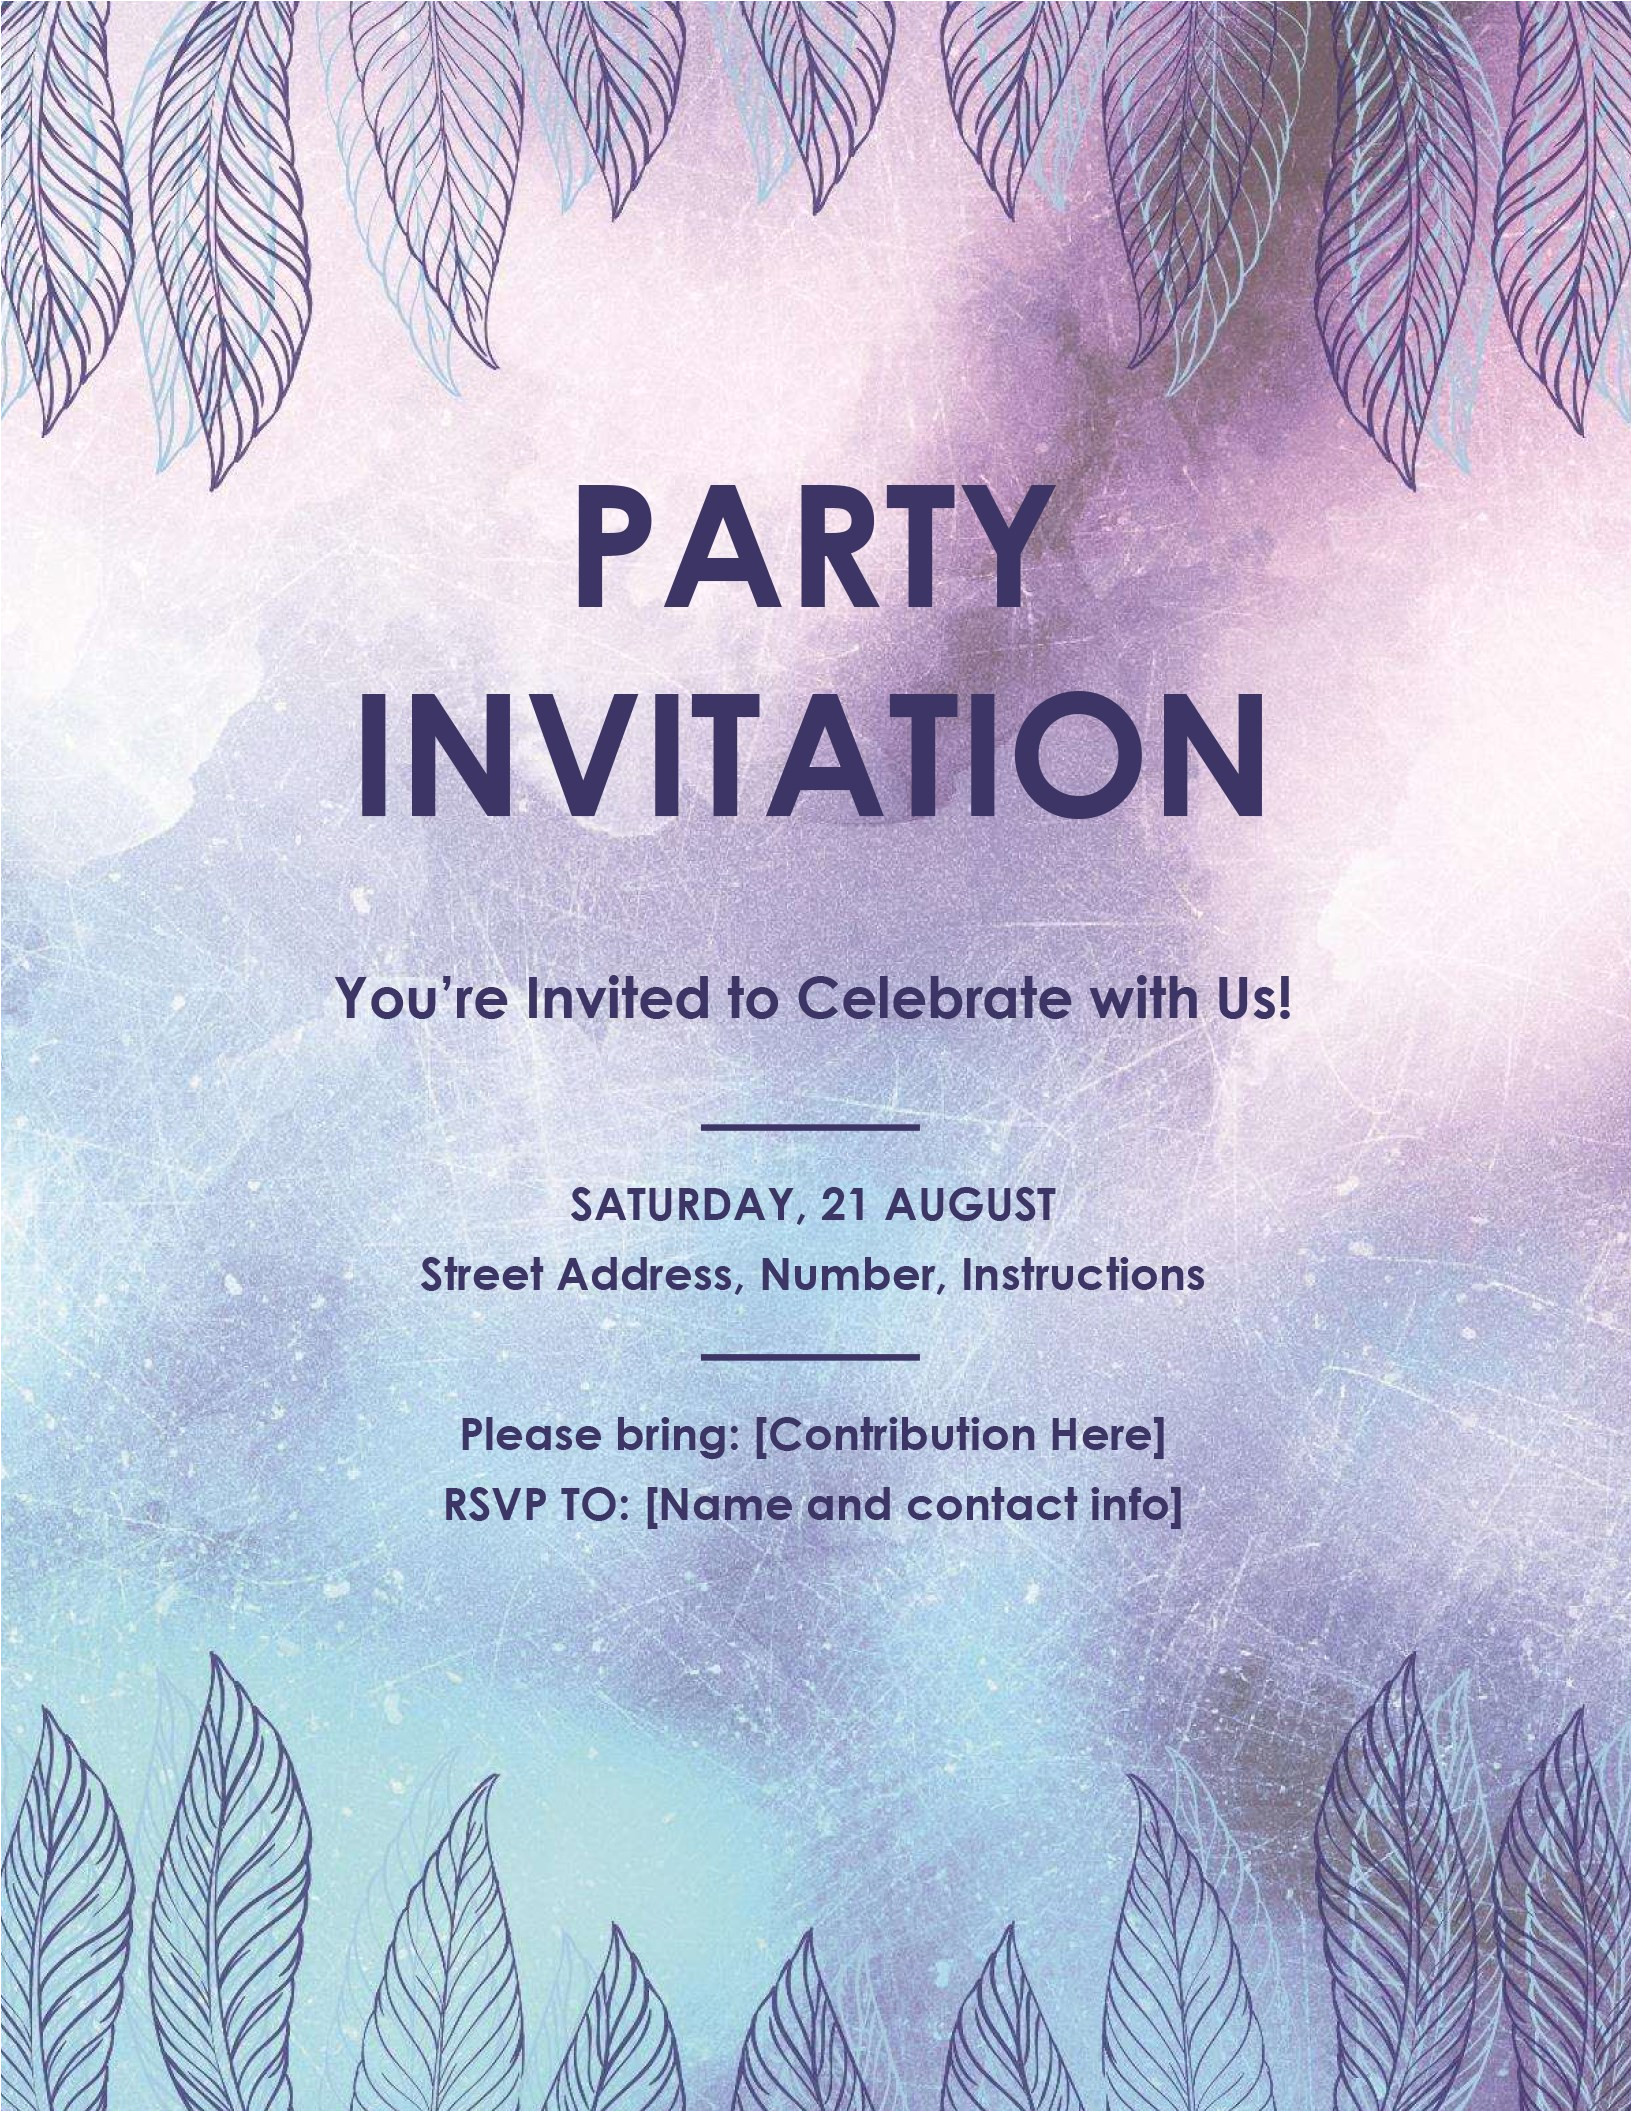 Party Invitation Flyer Templates Party Invitation Flyer